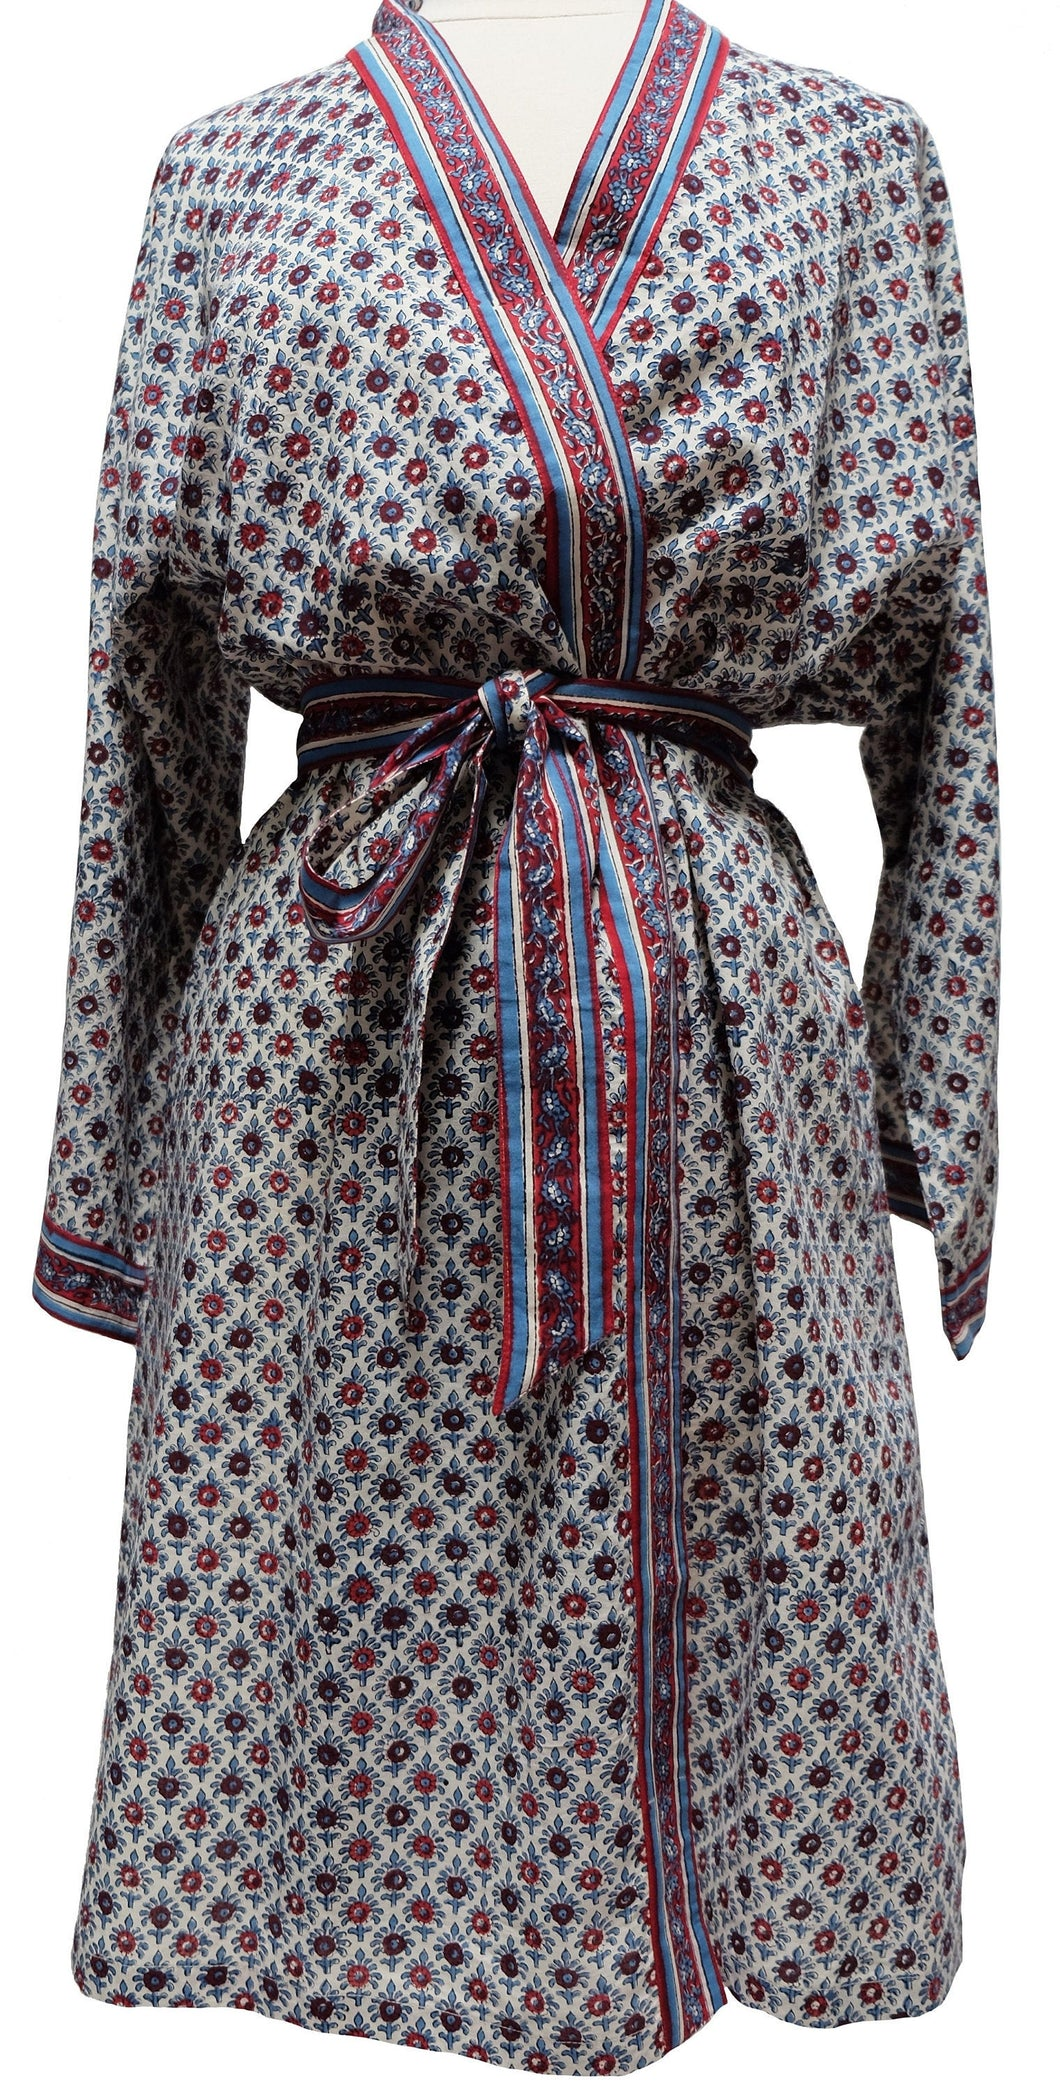 Short Robe - Starflower Booti  - free size - Anokhi